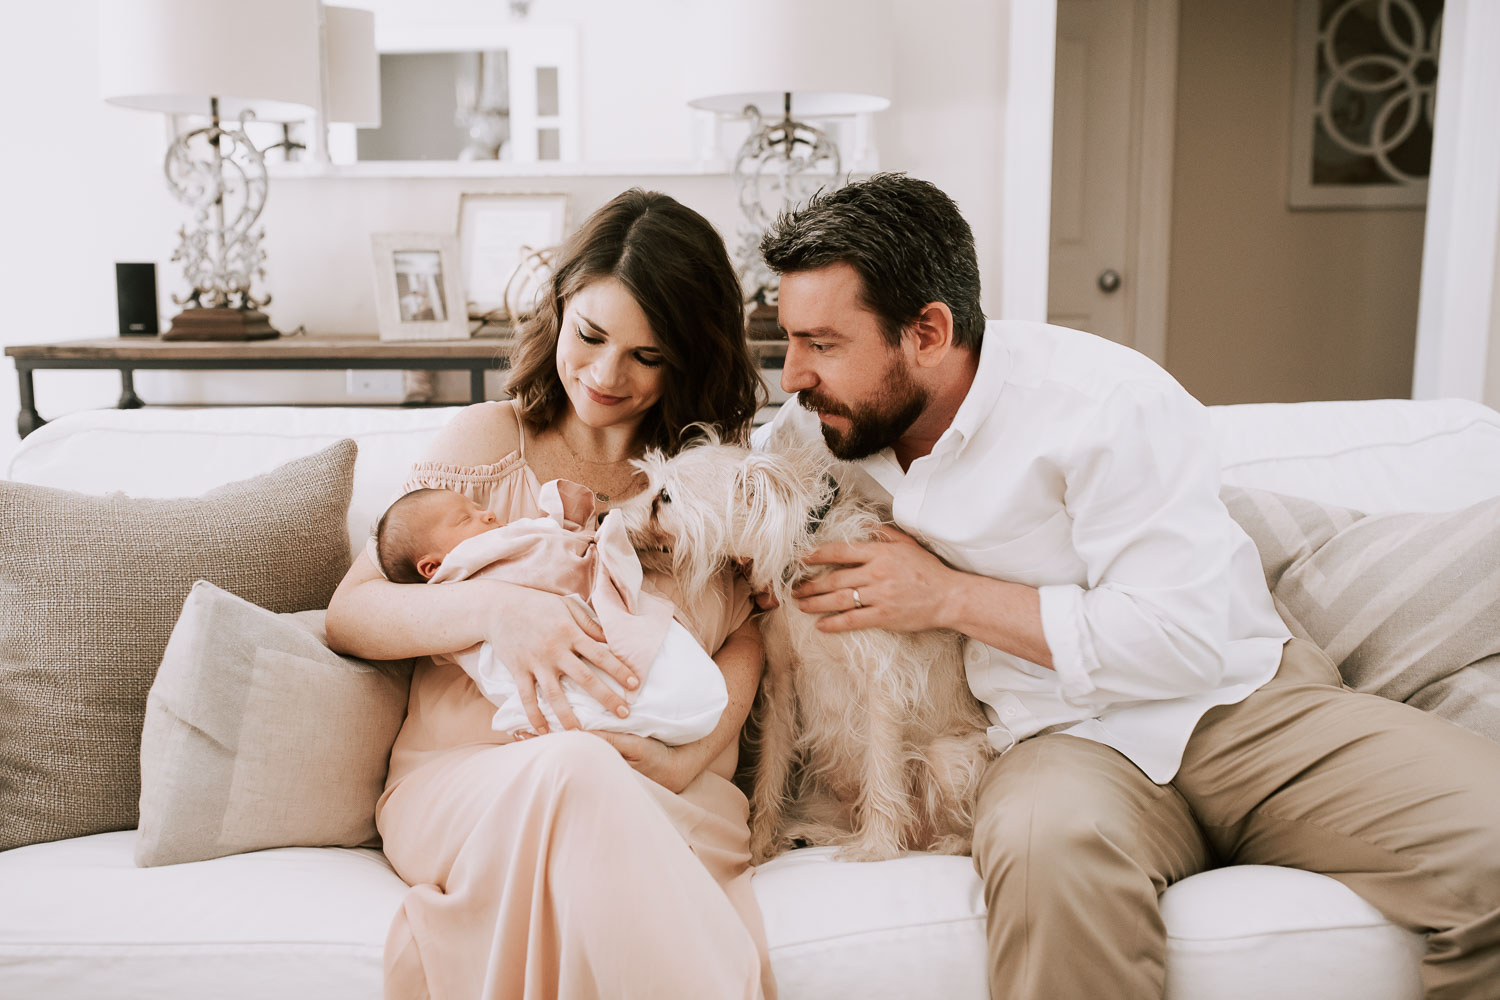 Brigette was a dream to work with! She has a bubbly personality, which is such a light during those first few hazy newborn days! She captured so many wonderful shots of our new family, including our newborn daughter, Grace, and our furry first child, Finch. I will always treasure the moments she captured of our new little family! I can't recommend her enough! - Victoria